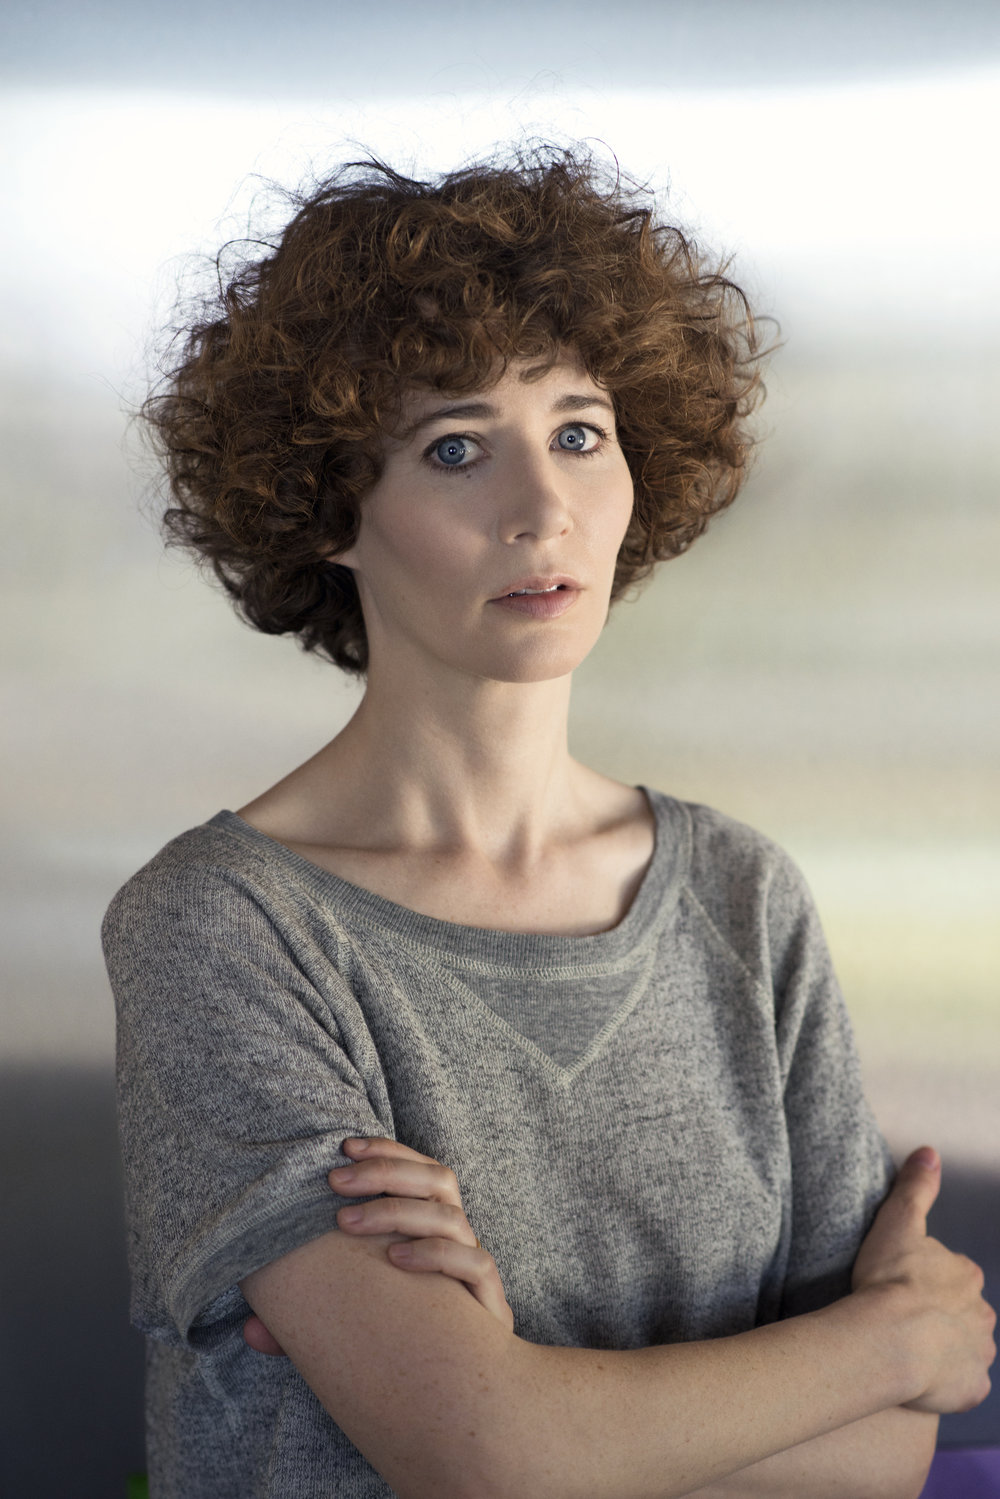 Miranda July 1-3133 kb (credit Todd Cole).jpg